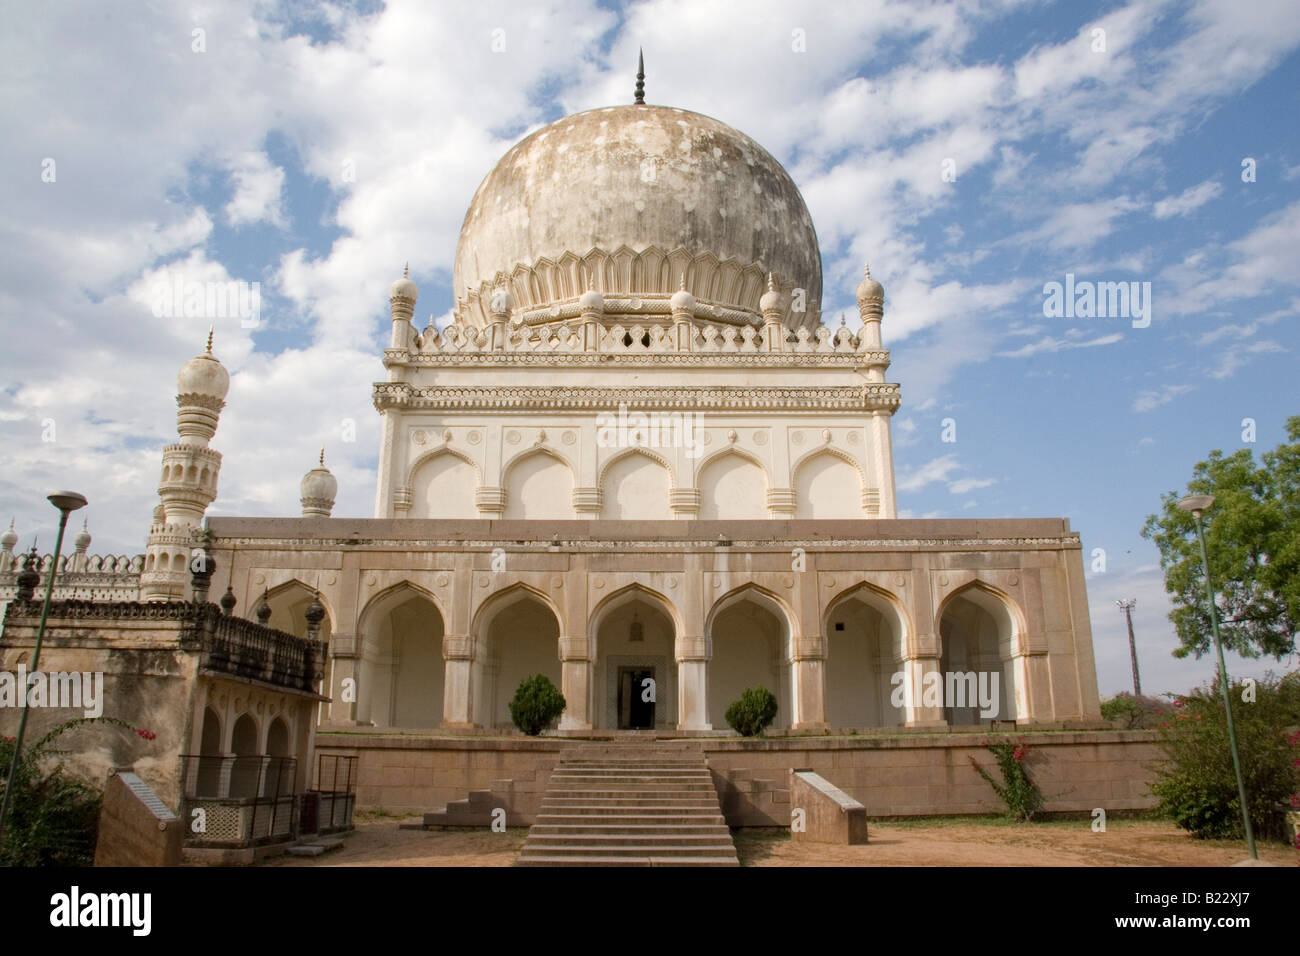 The tomb of Sultan Muhammad Qutb Shah (1611 - 1625) at the complex holding the mausoleums of the Qutb Shahi Kings - Stock Image